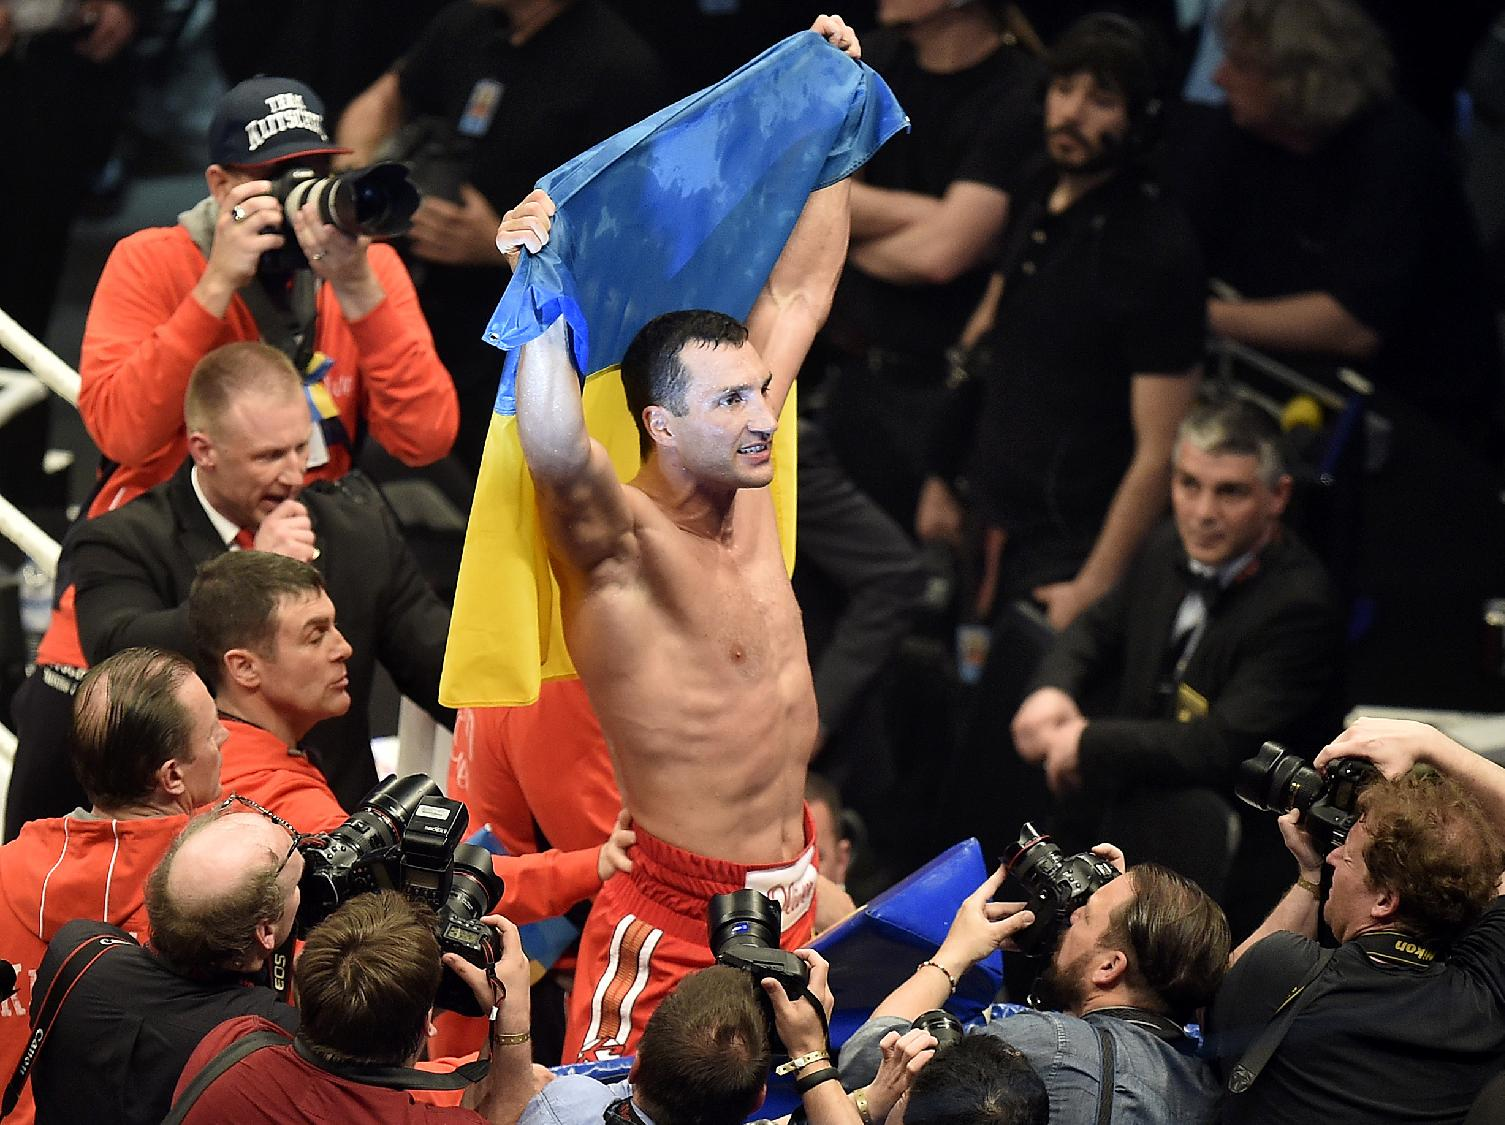 World boxing champion Wladimir Klitschko celebrates with the Ukrainian flag after defeating Samoan-born Australian challenger Alex Leapai following their IBF, IBO, WBO and WBA heavyweight title bout in Oberhausen, Germany, Saturday, April 26, 2014. Klitschko won the fight by technical knock out in the fifth round